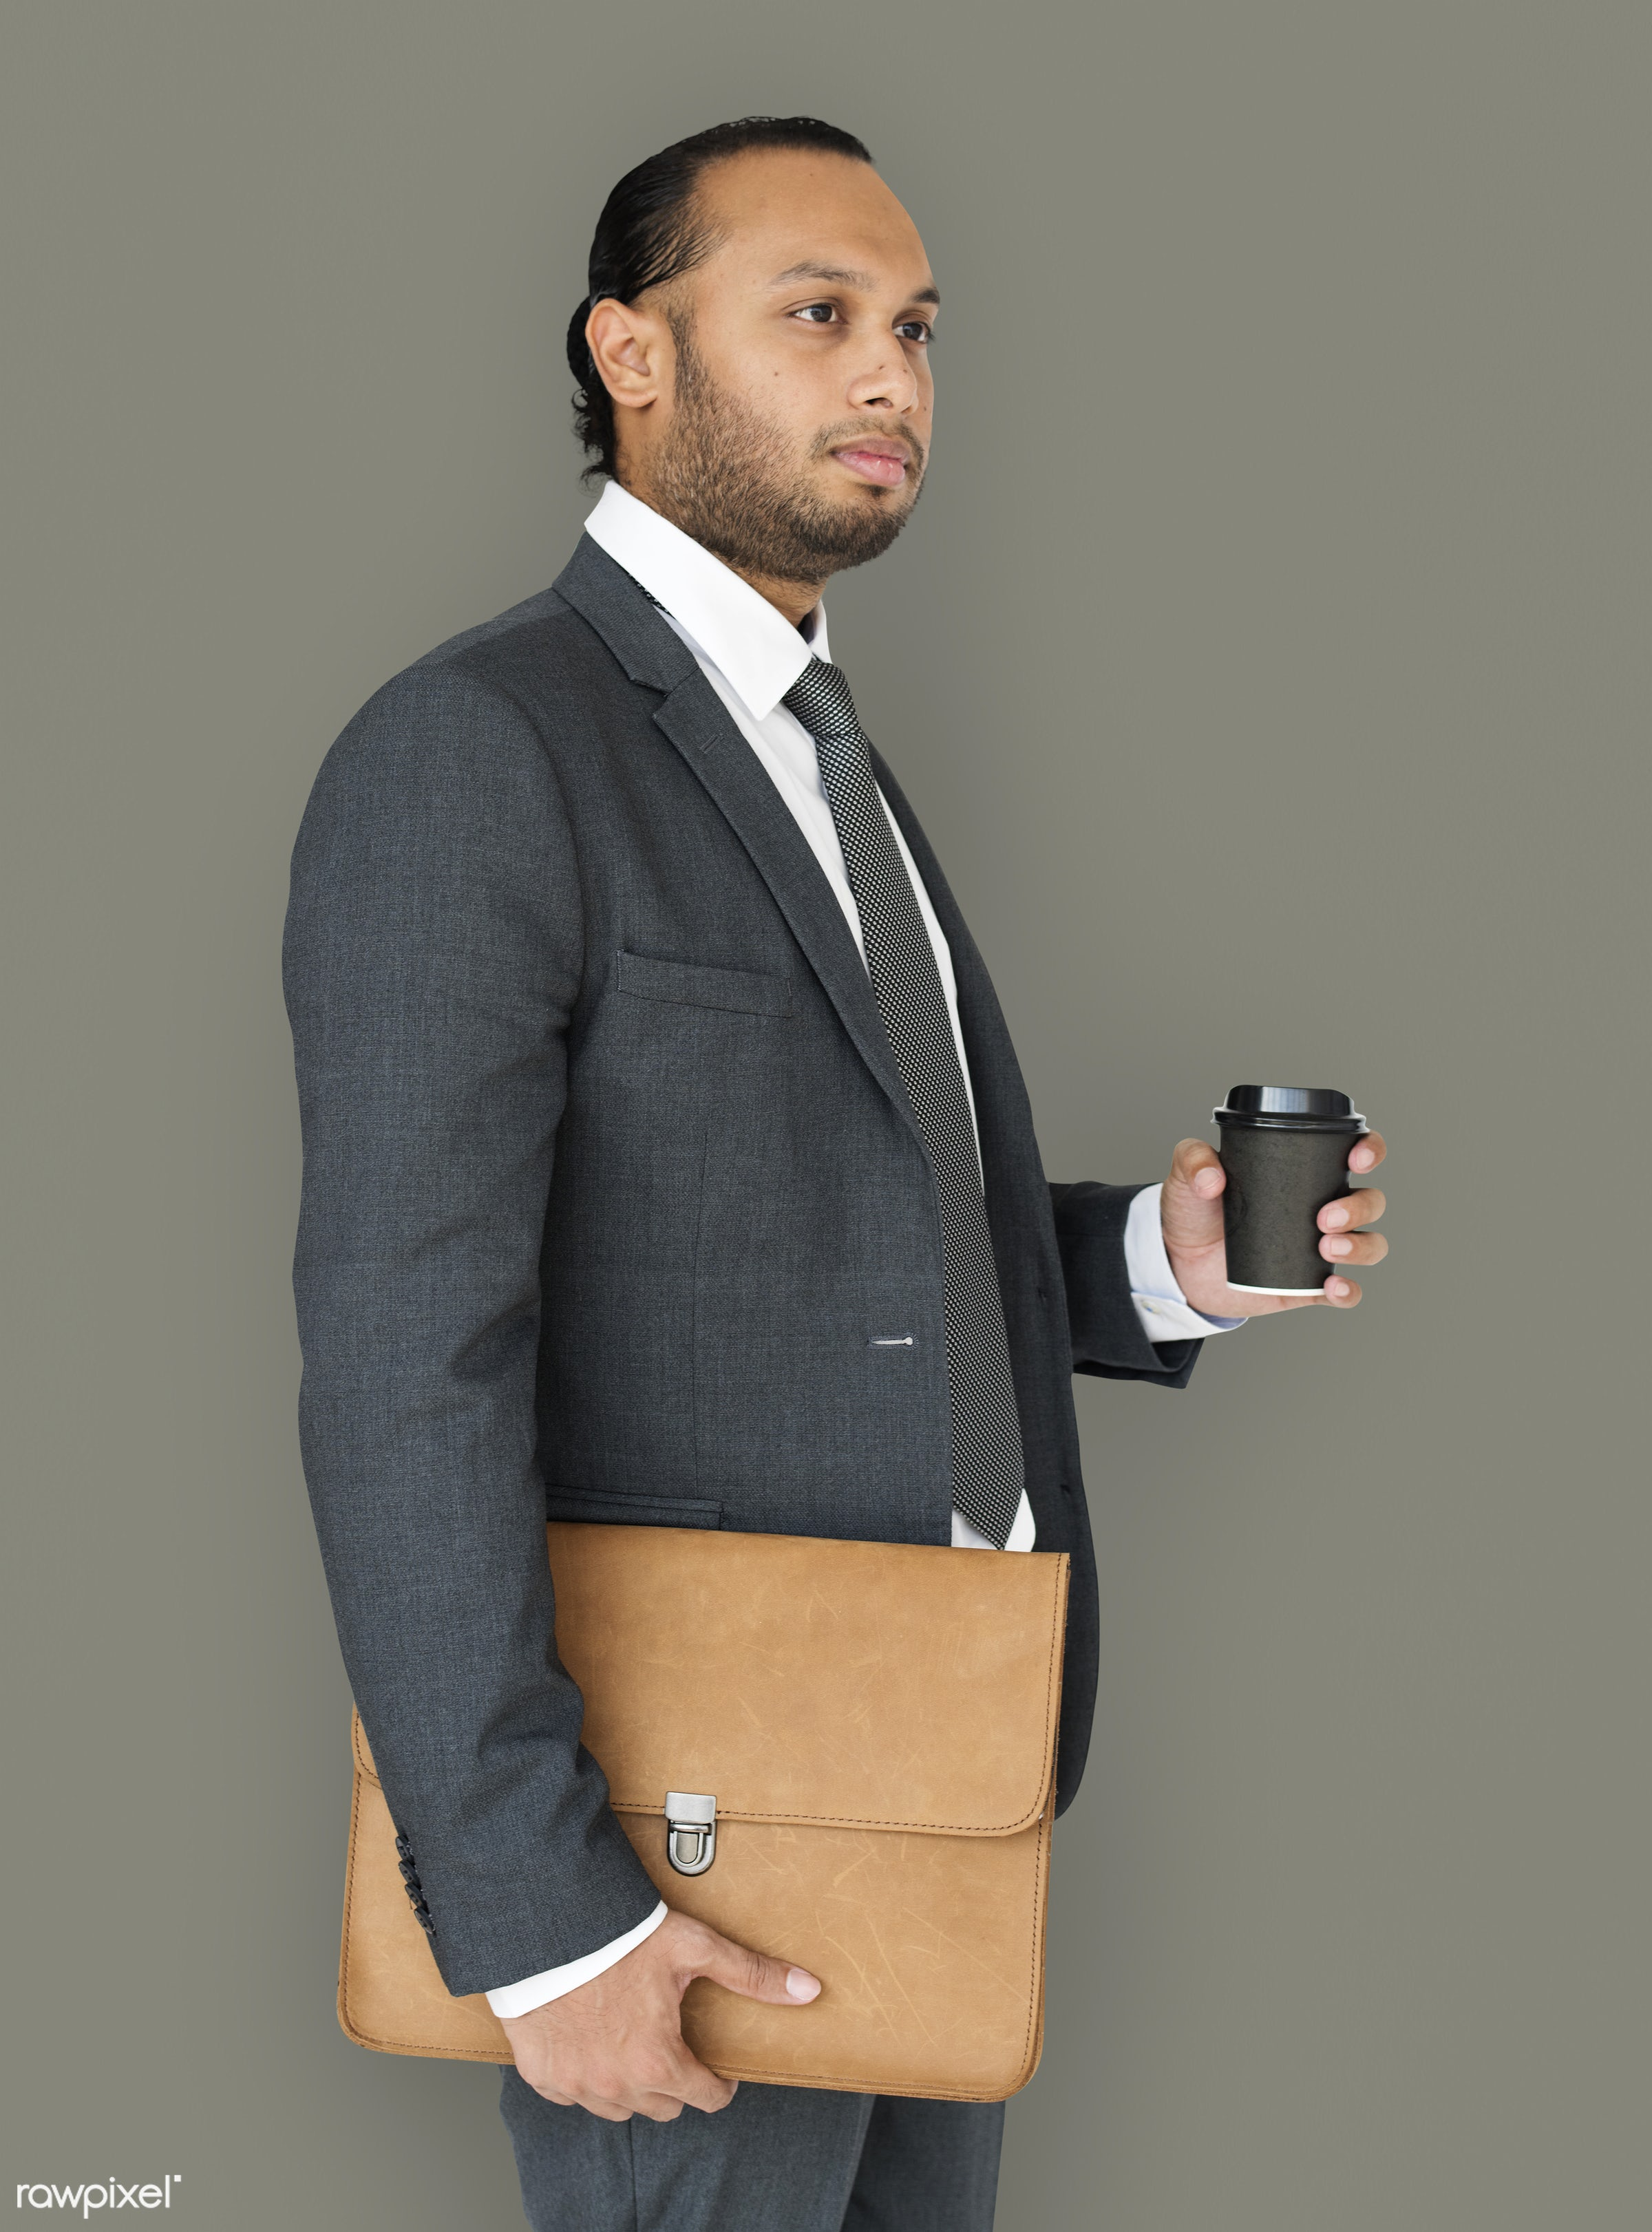 expression, studio, person, business wear, messenger bag, side view, people, business, asian, side, holding coffee, man,...